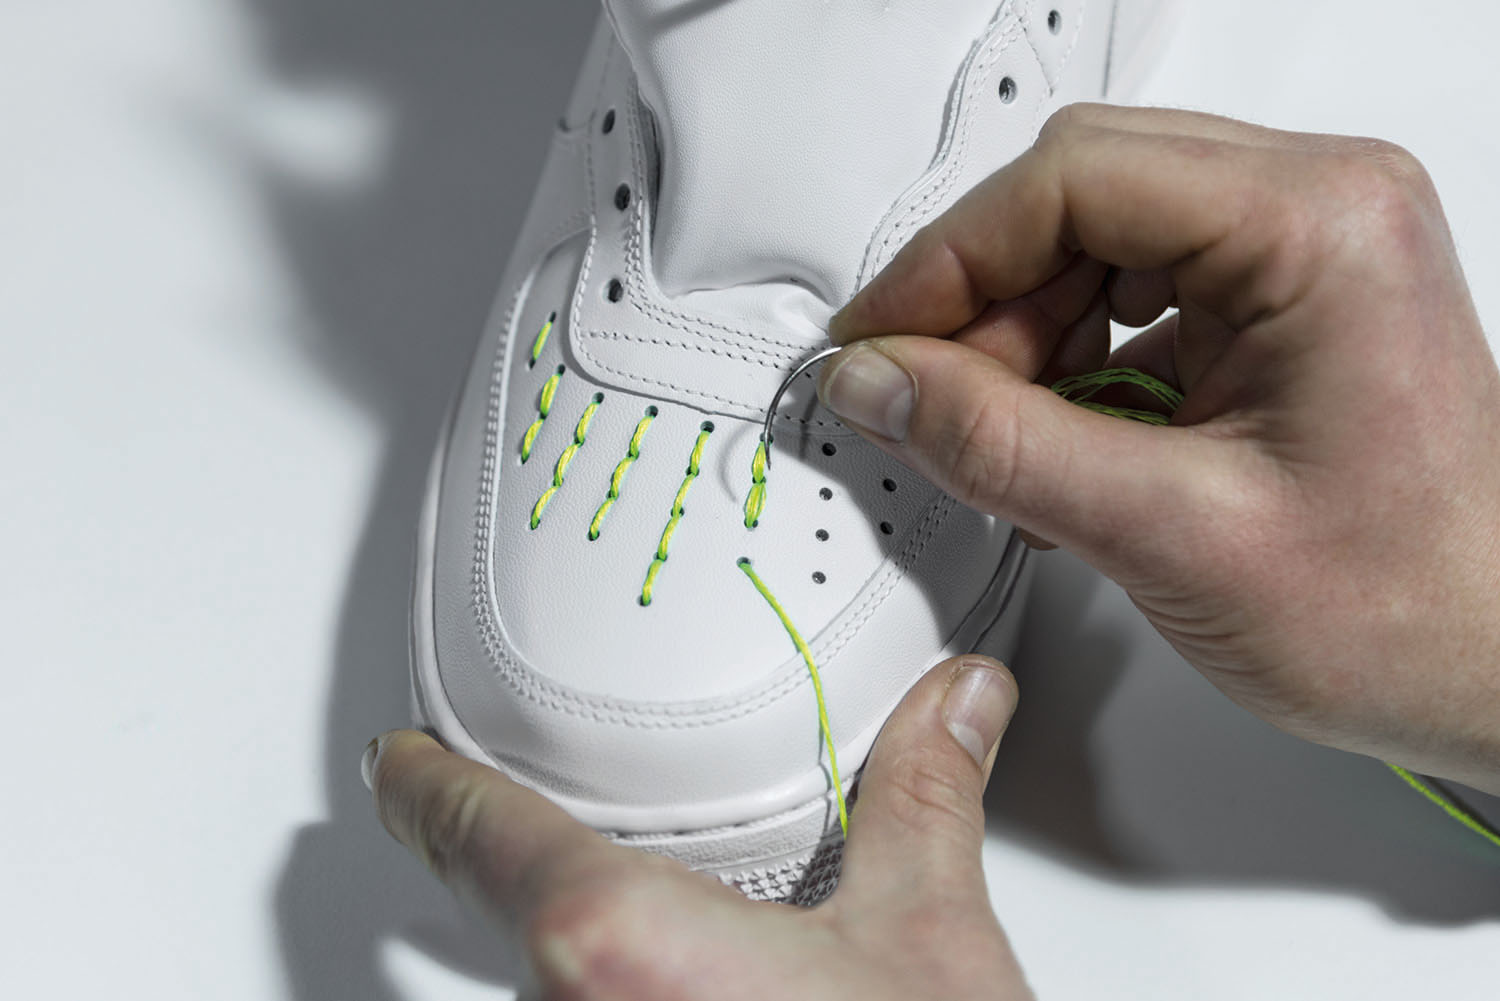 Amédeo is sewing the AF1 fluo